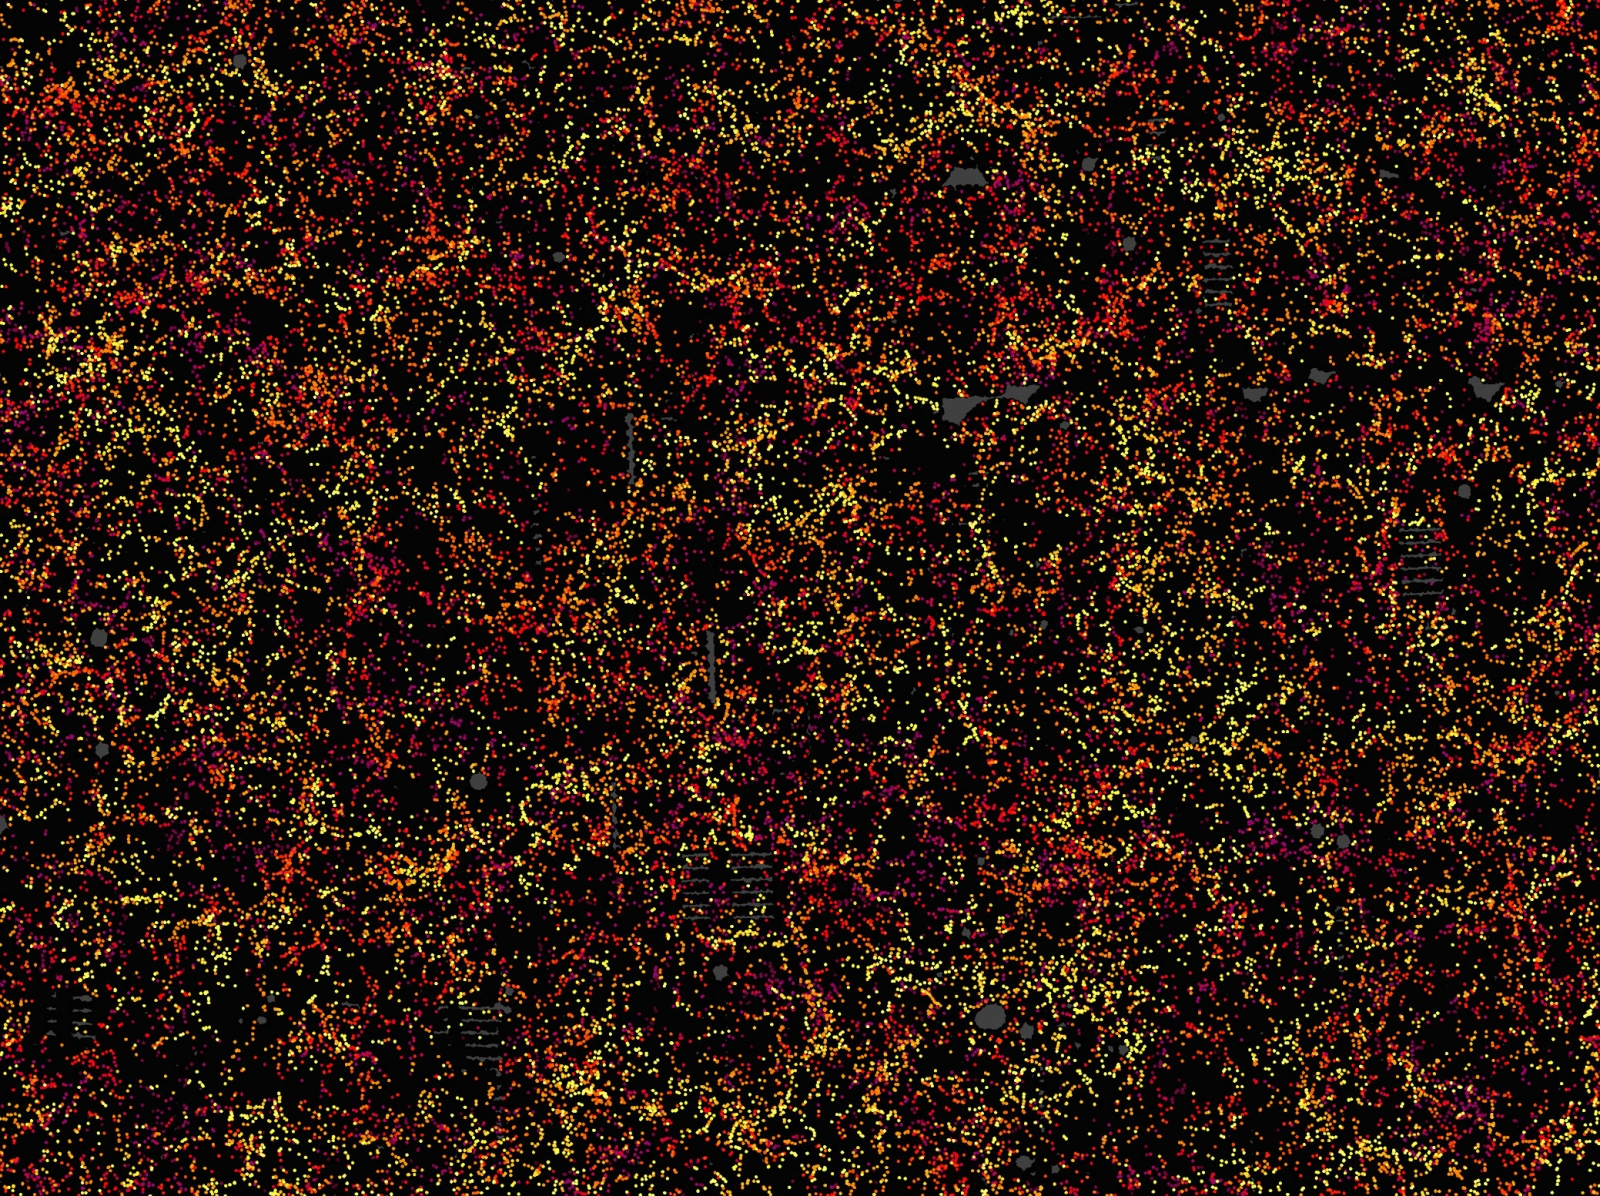 Largest 3D map of the universe created detailing 1.2 million galaxies to measure dark energy